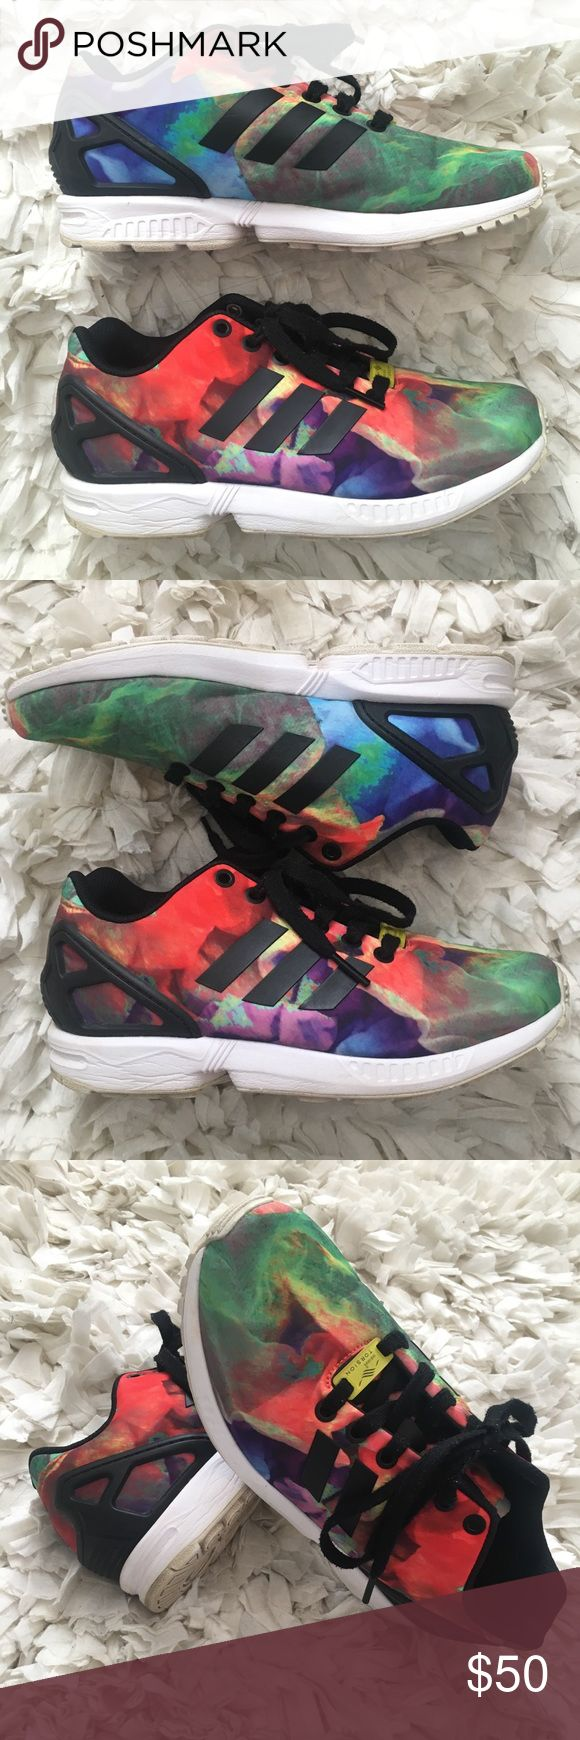 adidas zx flux (multicolor) these sneakers are definitely a work of art! great condition. adidas Shoes Sneakers